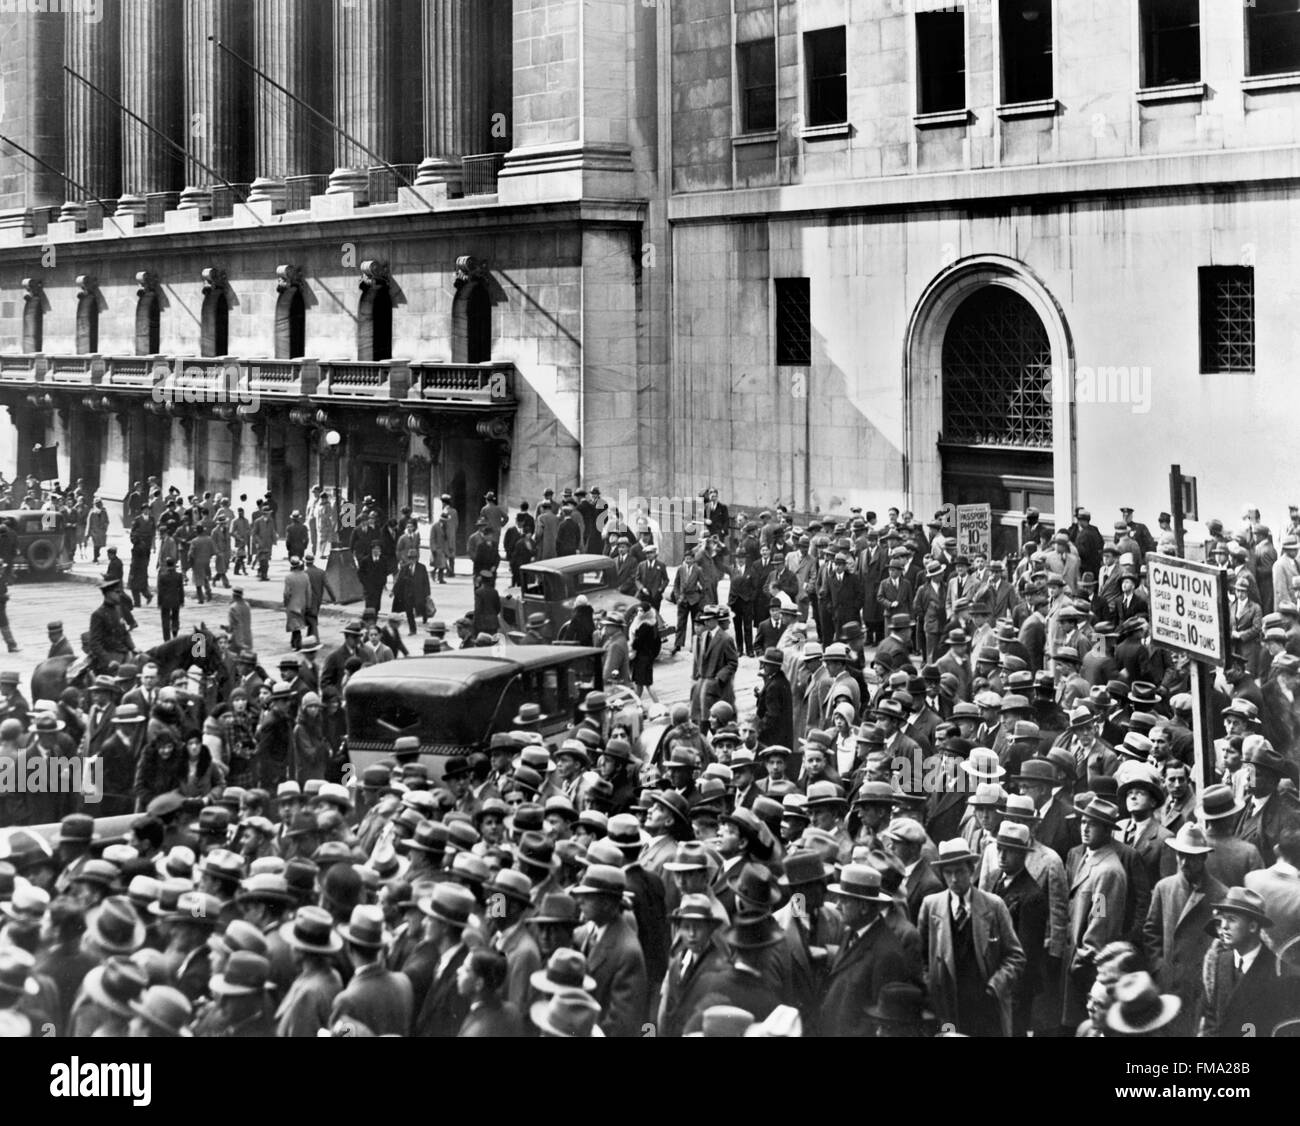 Wall Street Crash. La folla di persone si riuniscono al di fuori del New York Stock Exchange dopo il crash del 1929, Immagini Stock